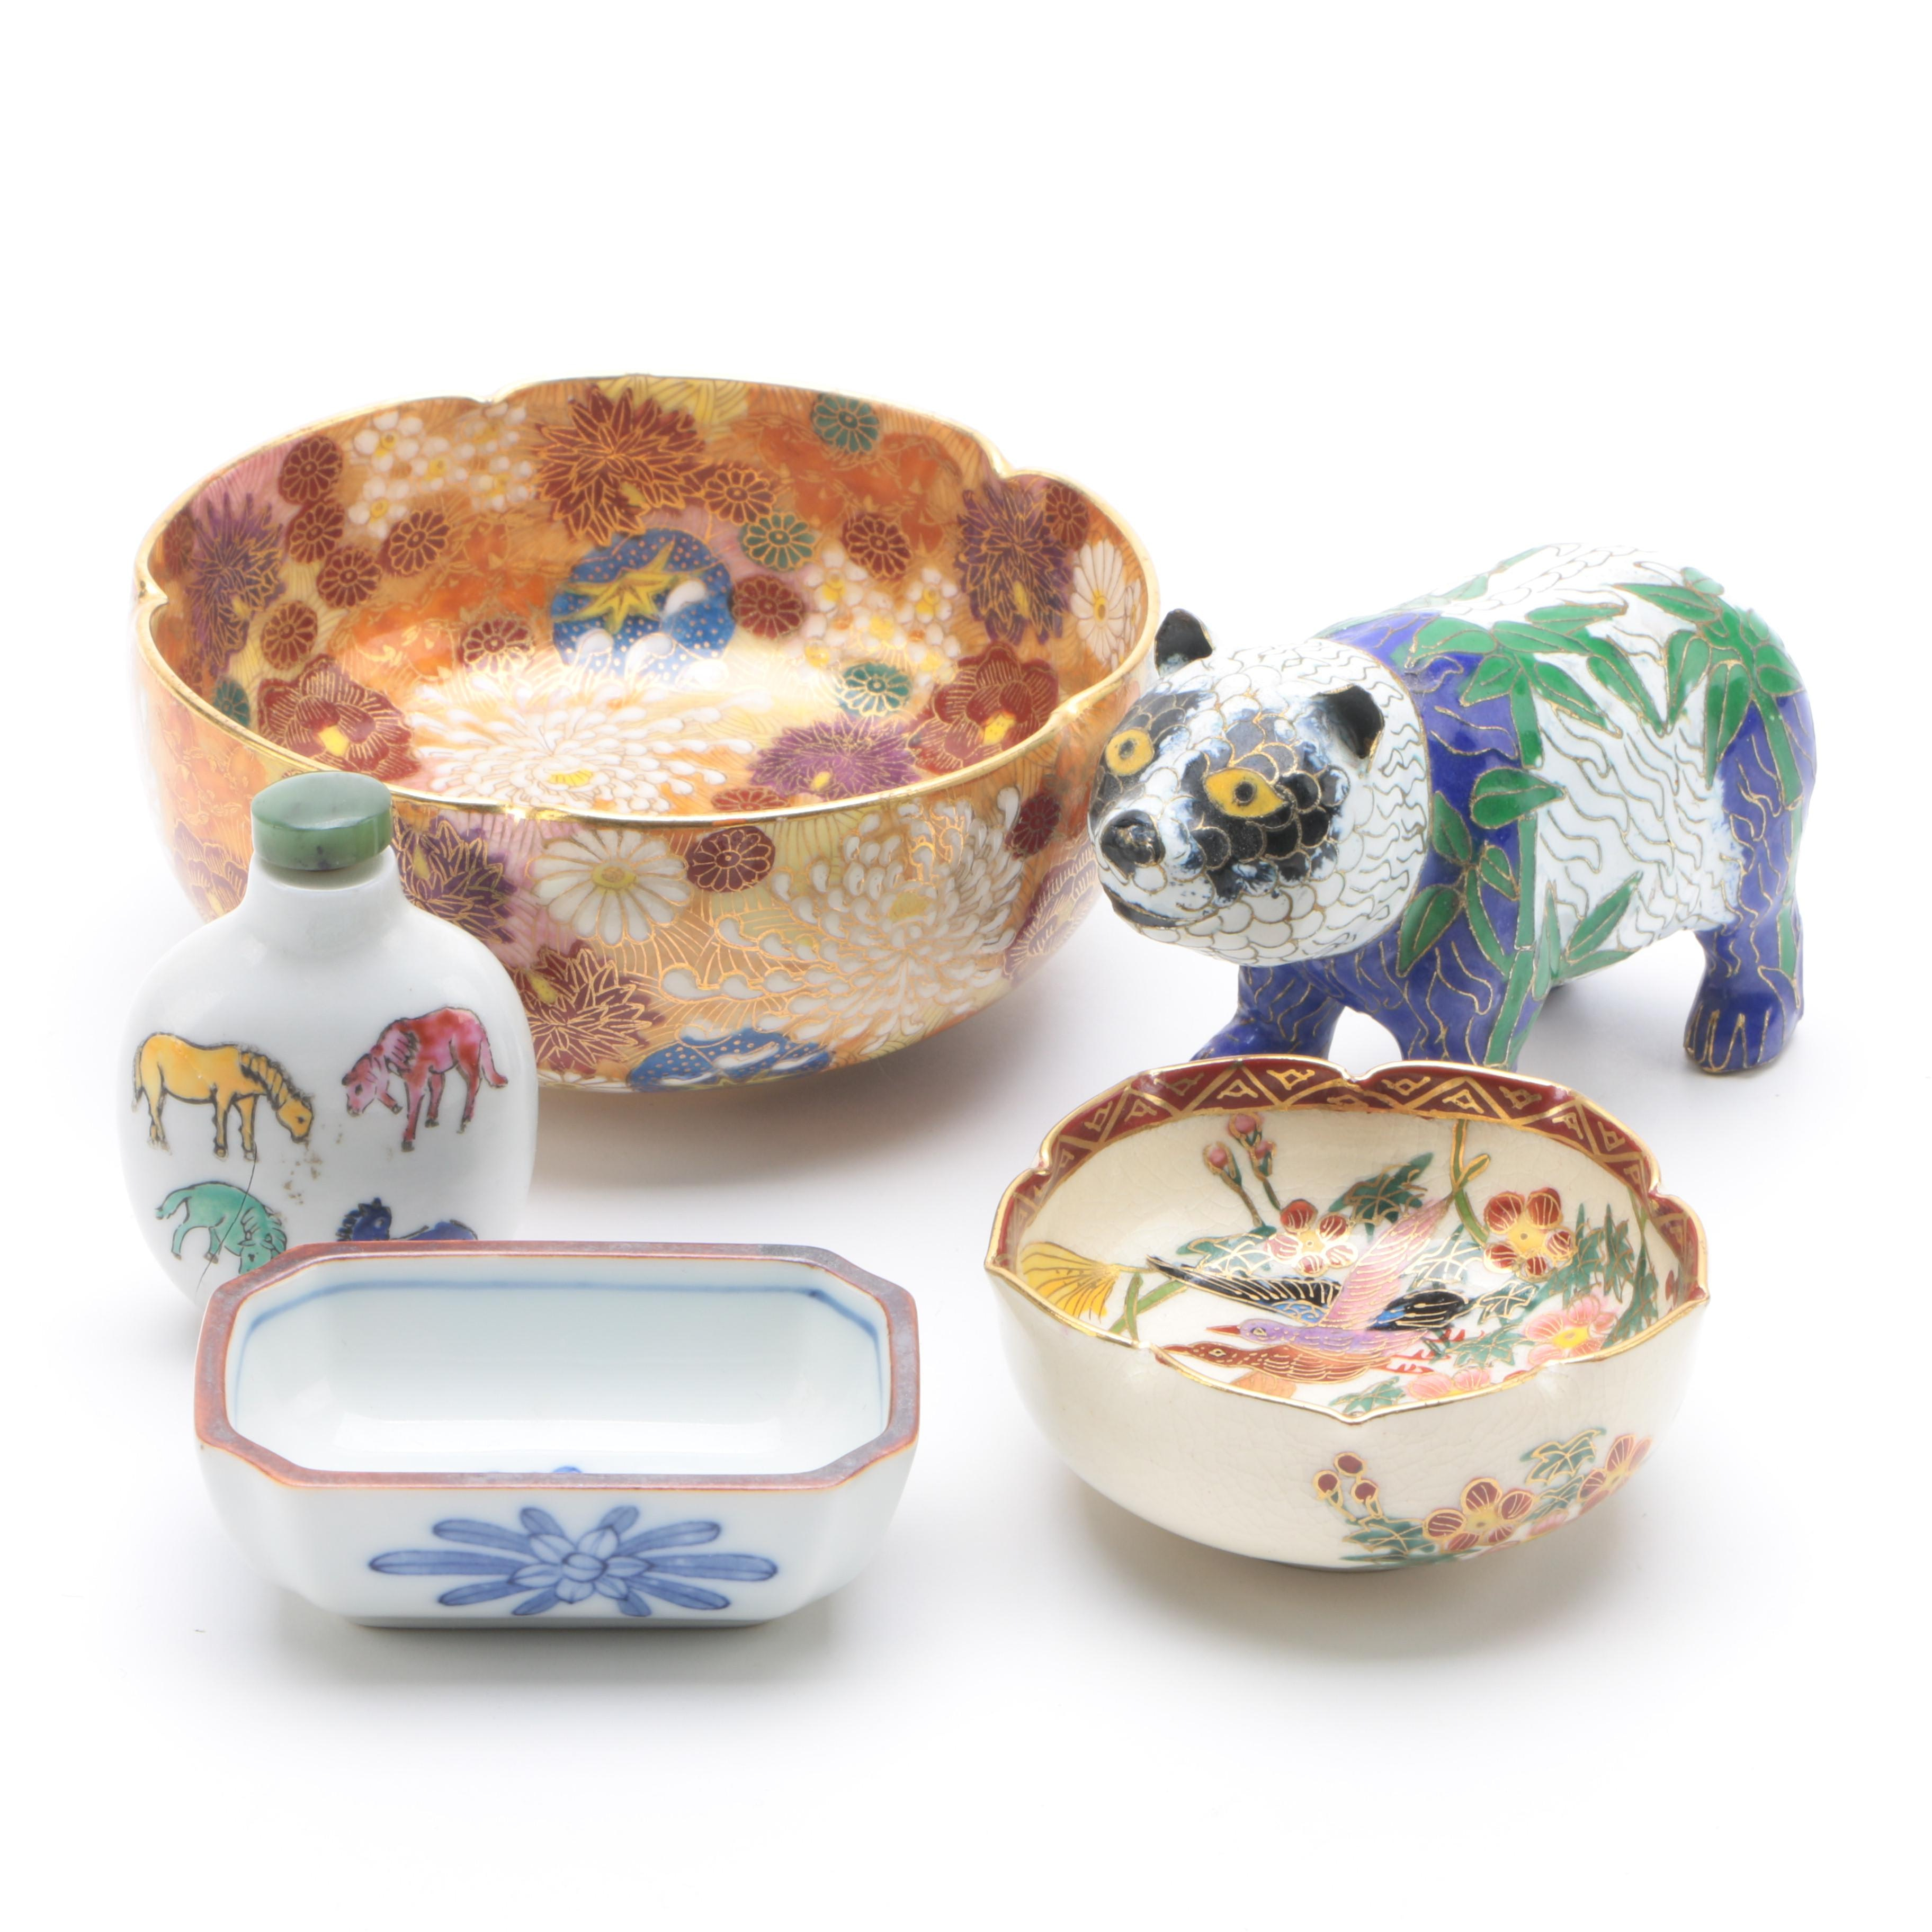 Chinese Cloisonné Panda Figurine with East Asian Bowls and Snuff Bottle